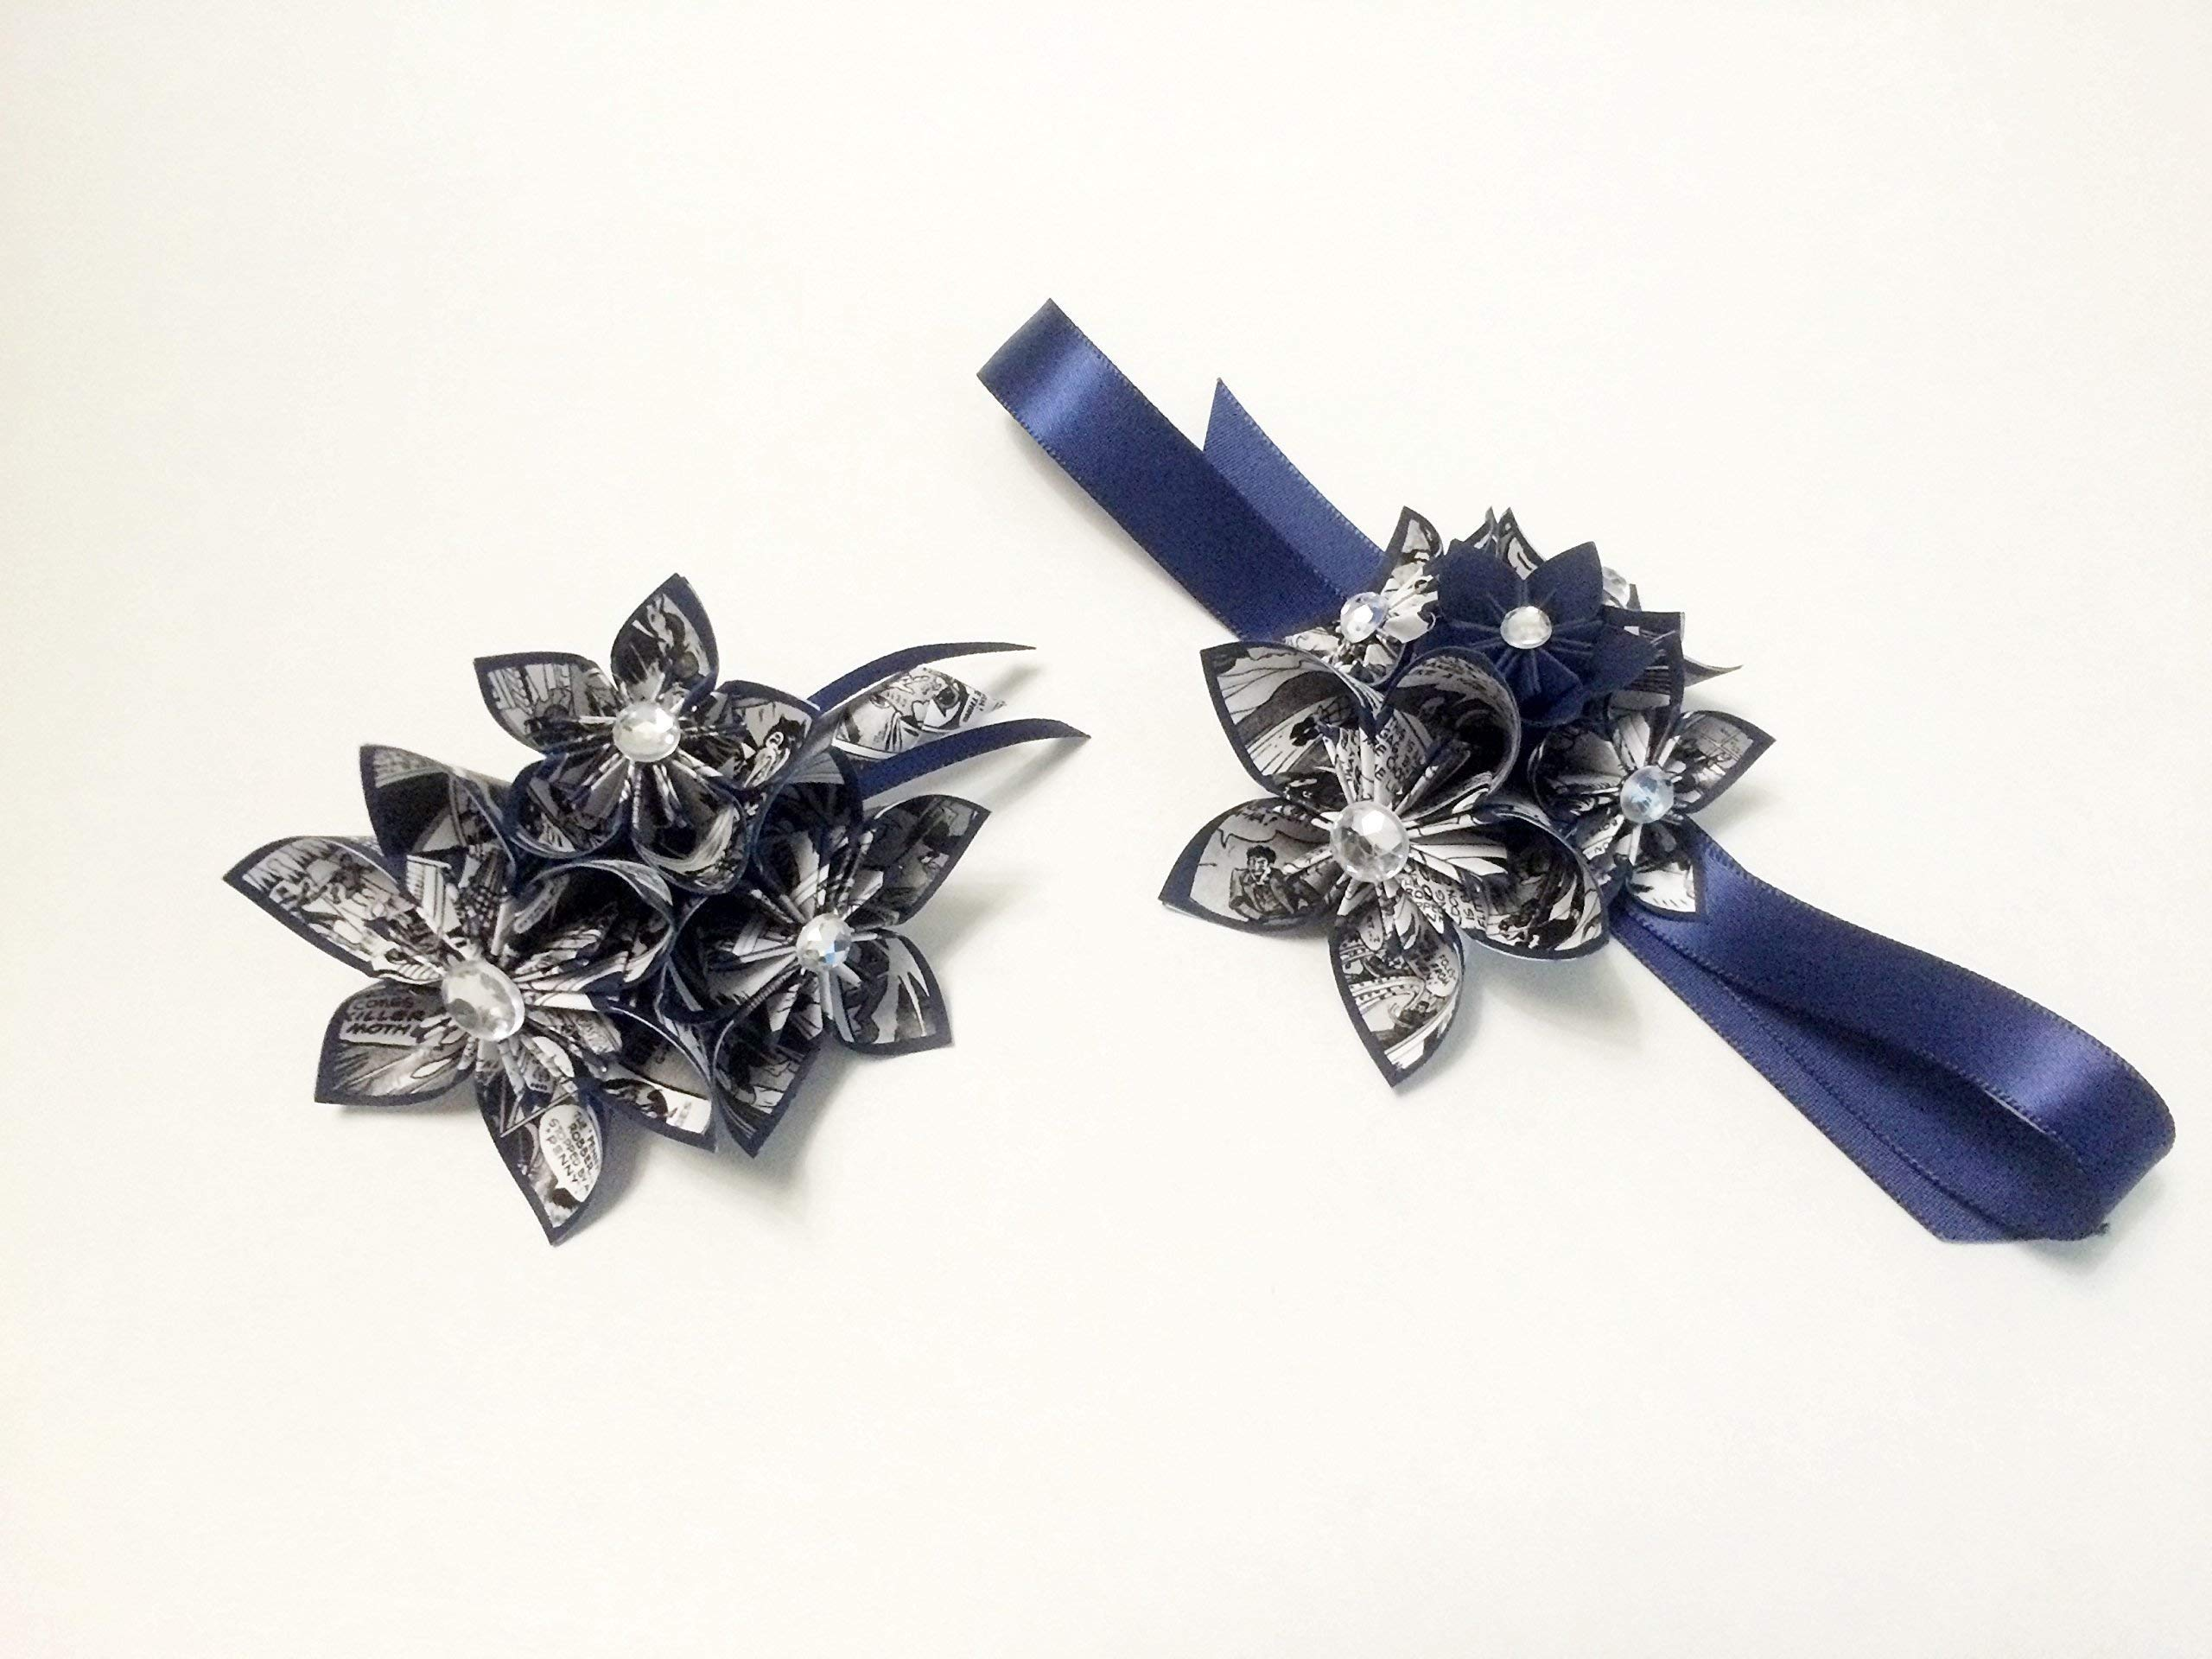 Comic-Book-Date-Night-Corsage-Boutonniere-set-one-of-a-kind-paper-flowers-origami-prom-graduation-military-ball-formal-homecoming-wedding-accessory